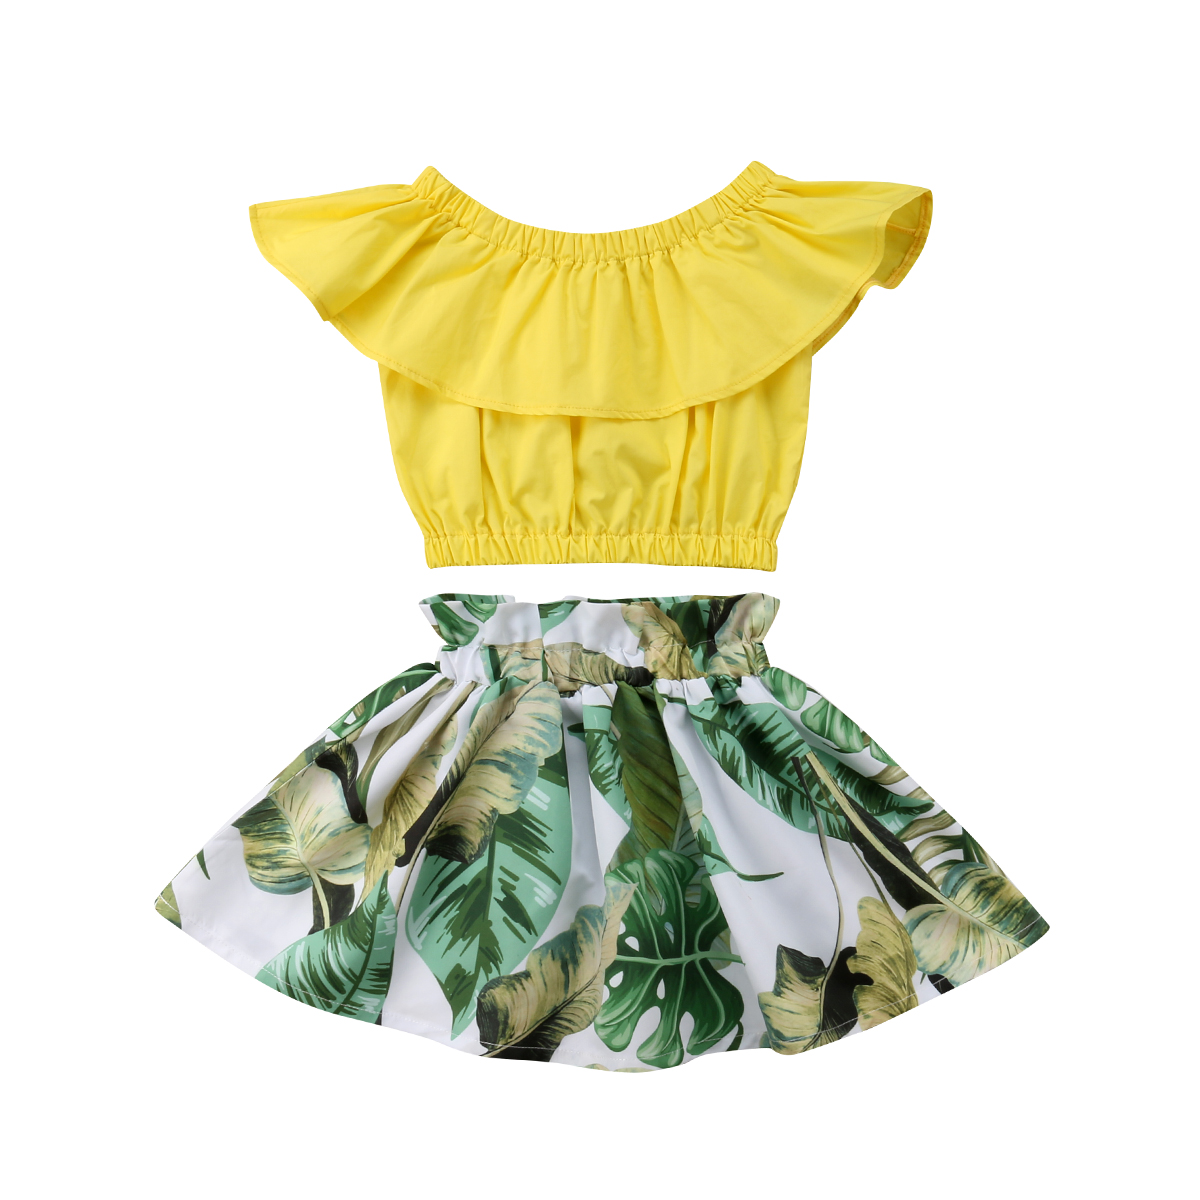 2019 New Summer Toddler Kid Baby Girl Sleeveless Clothes Sets O-neck Tops Floral Dress 2Pcs Cotton Outfits Clothes Wholesale Hot(China)